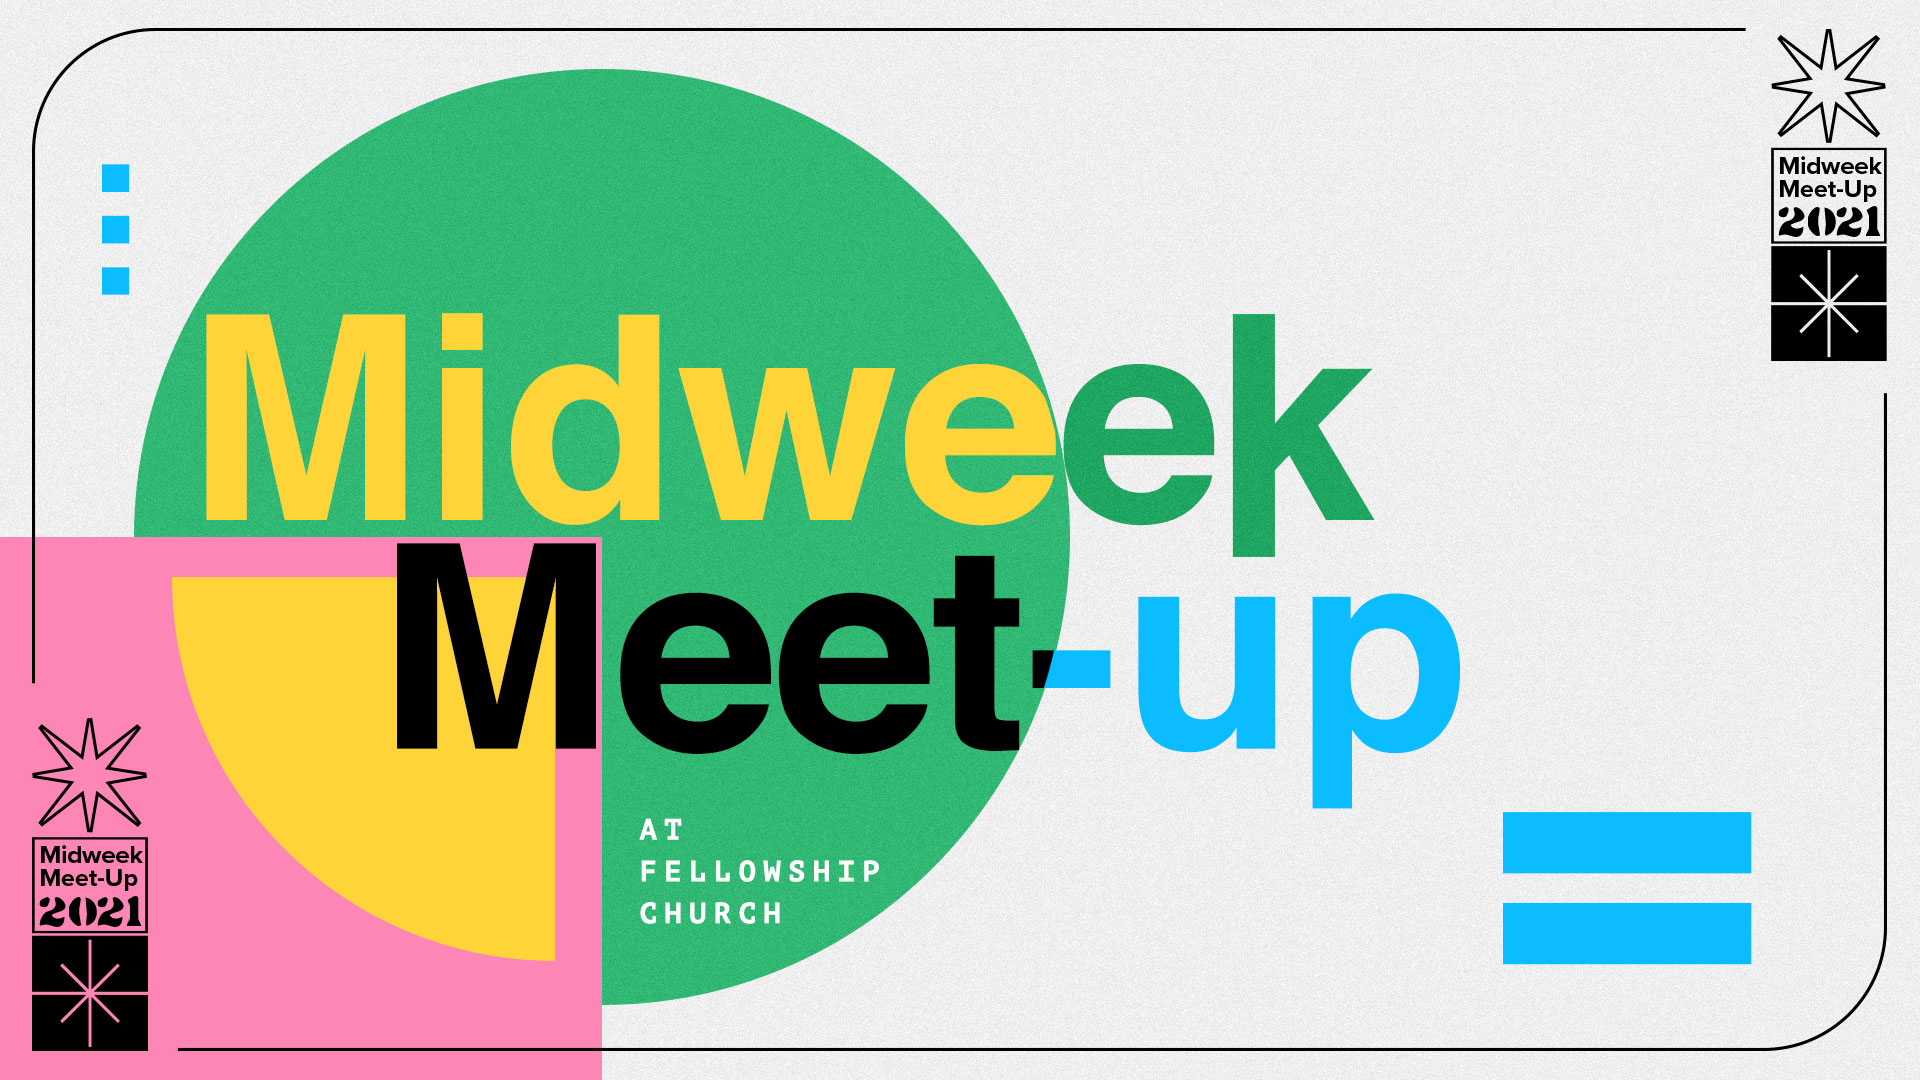 Midweek Meet-Up